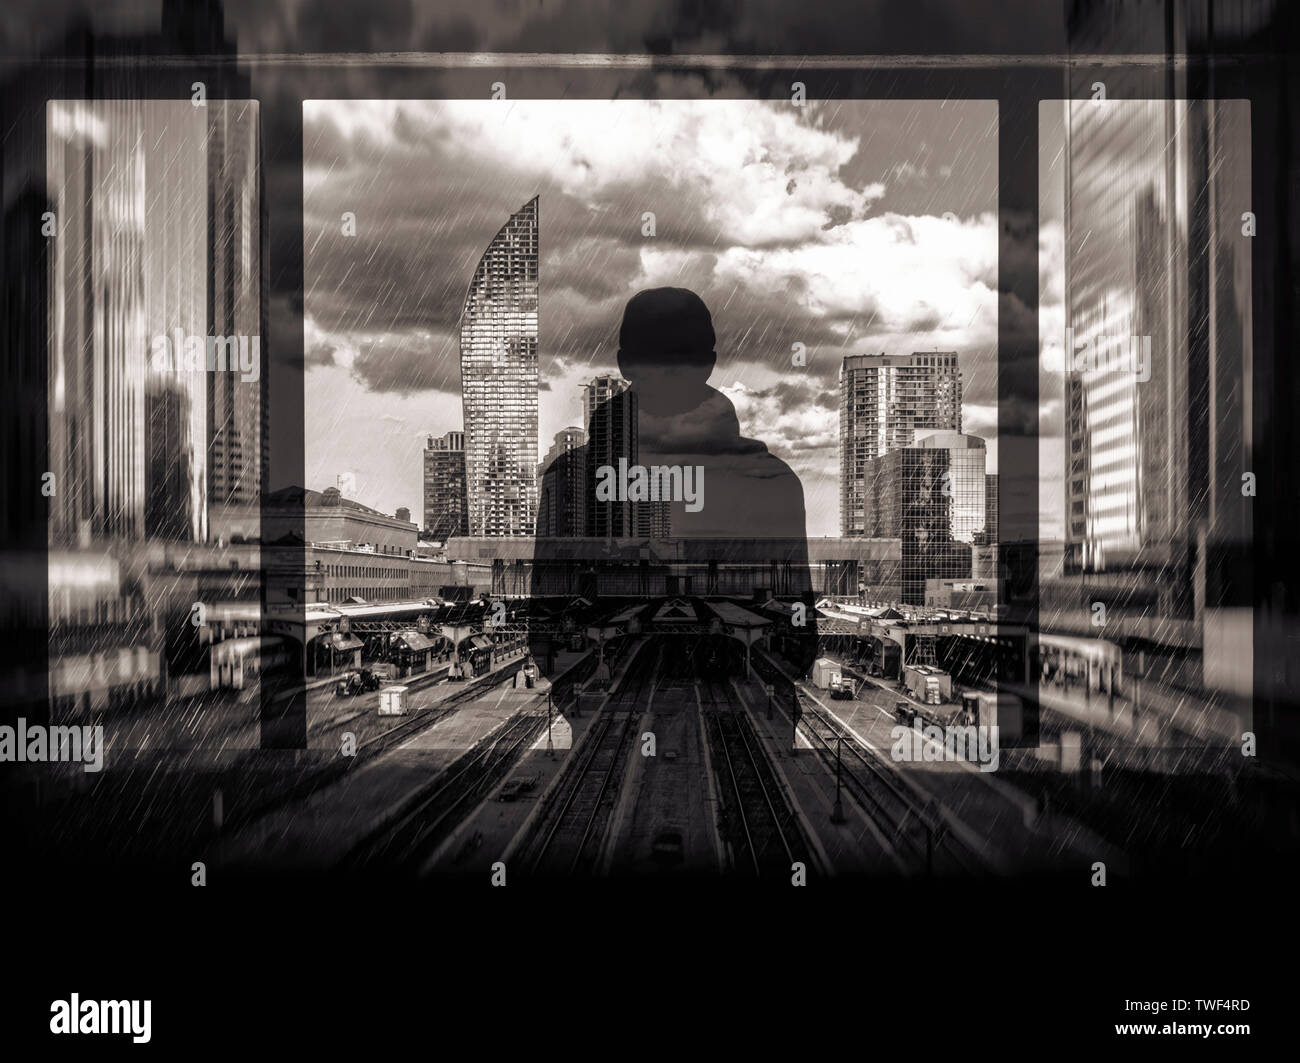 Double-exposure illustration of a person looking out across a railway terminus and city skyline in the rain Stock Photo